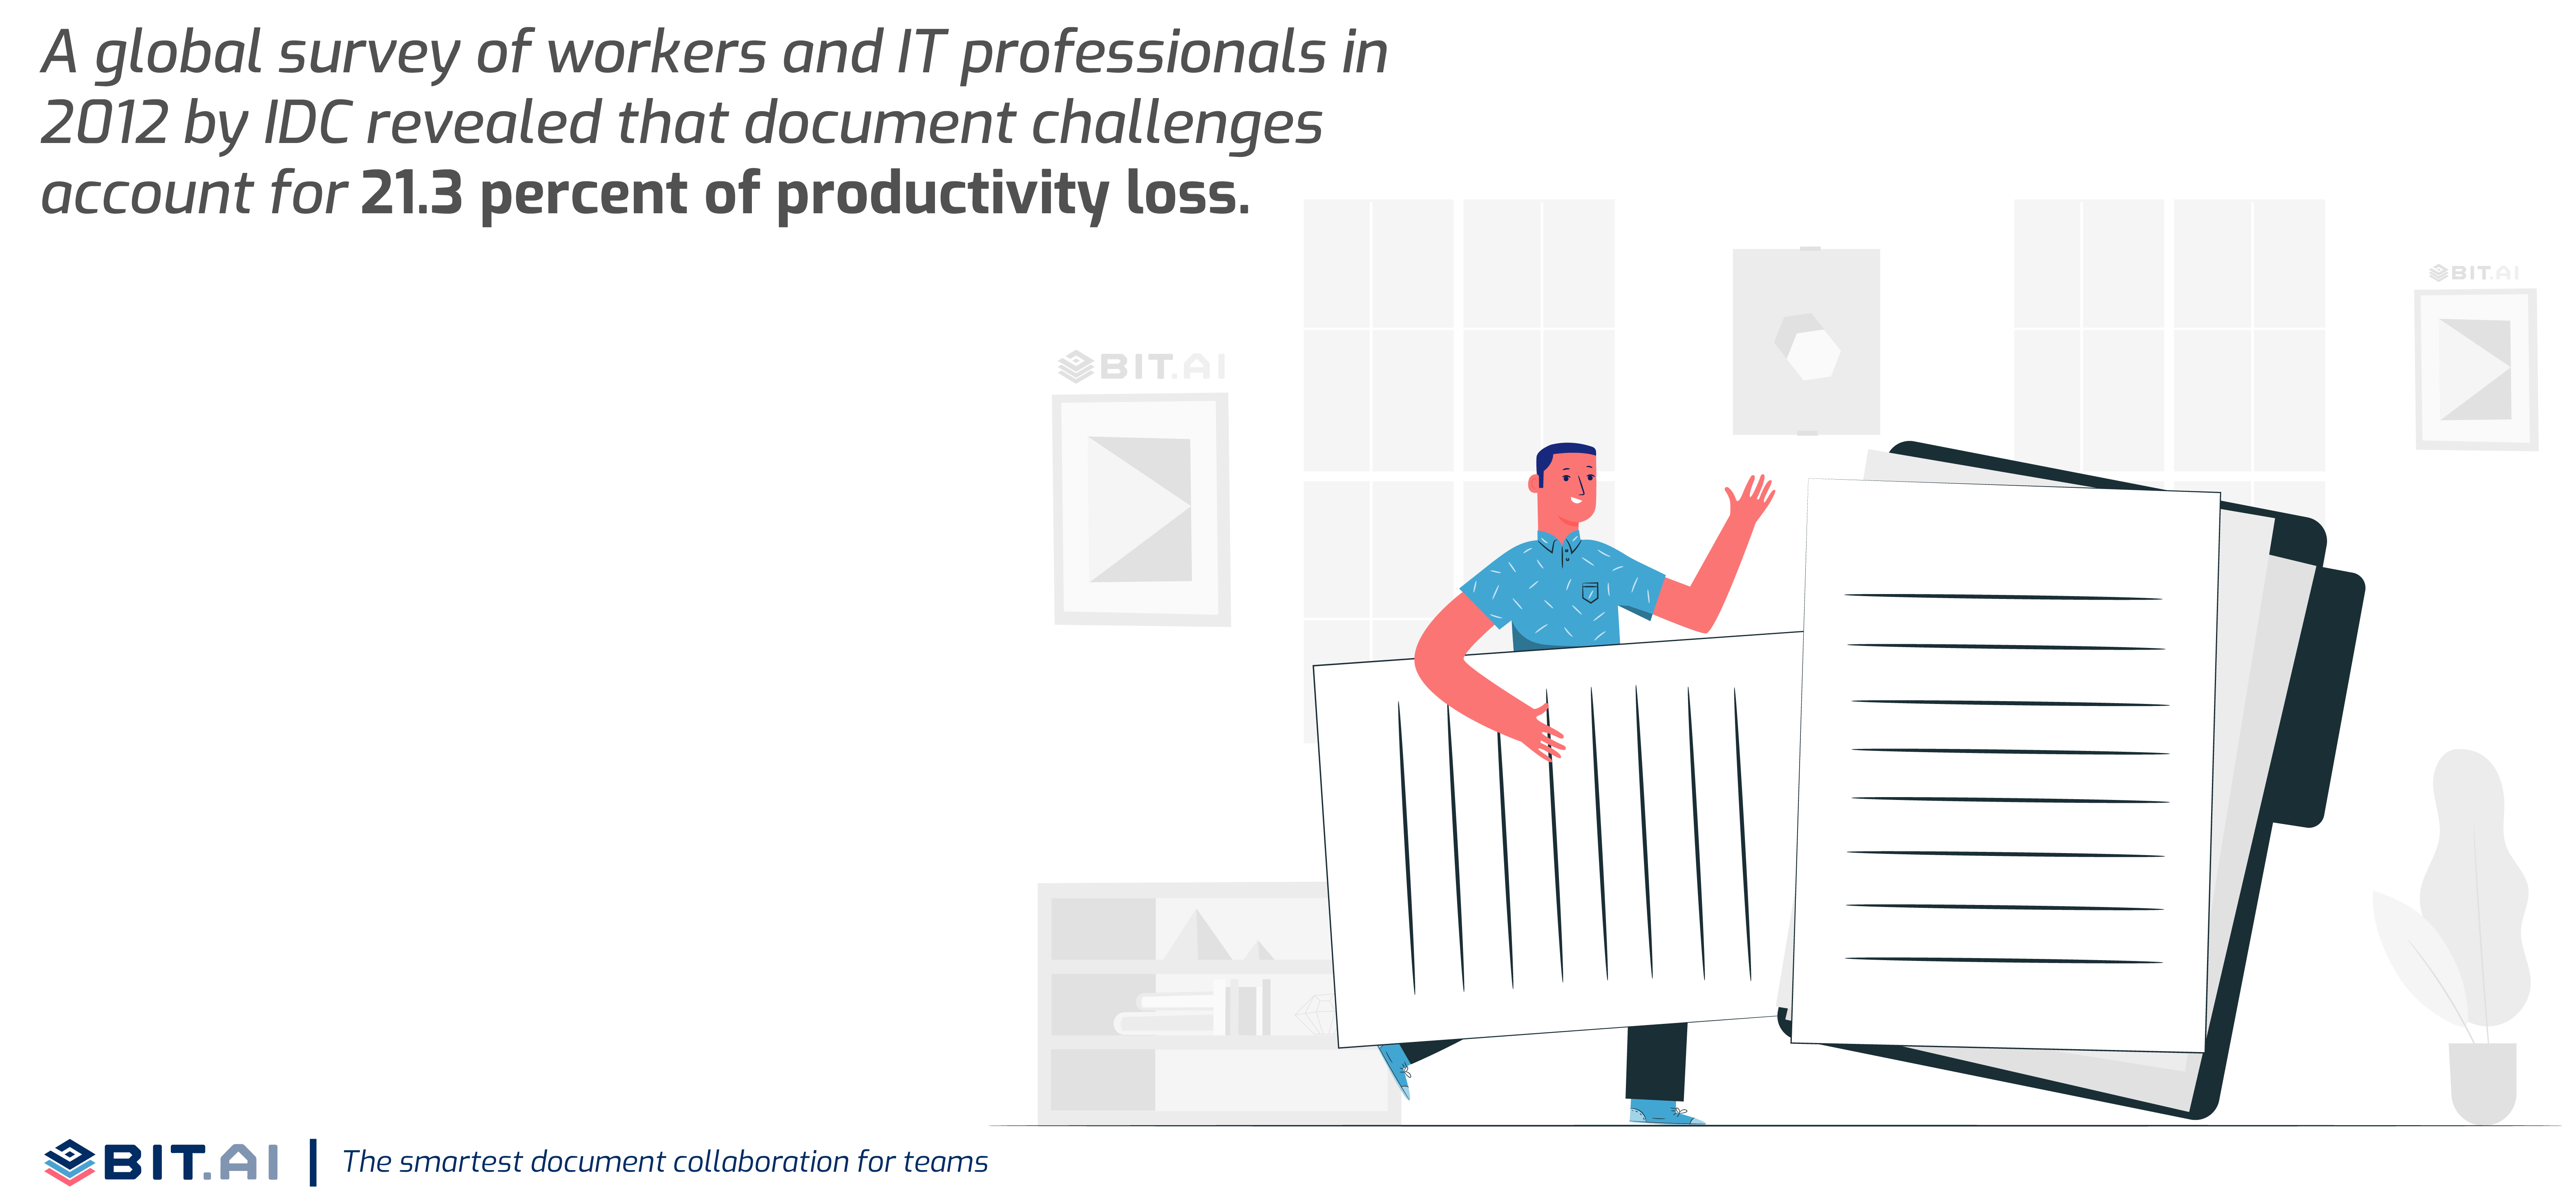 Statistic related to productivity loss because of document challenges